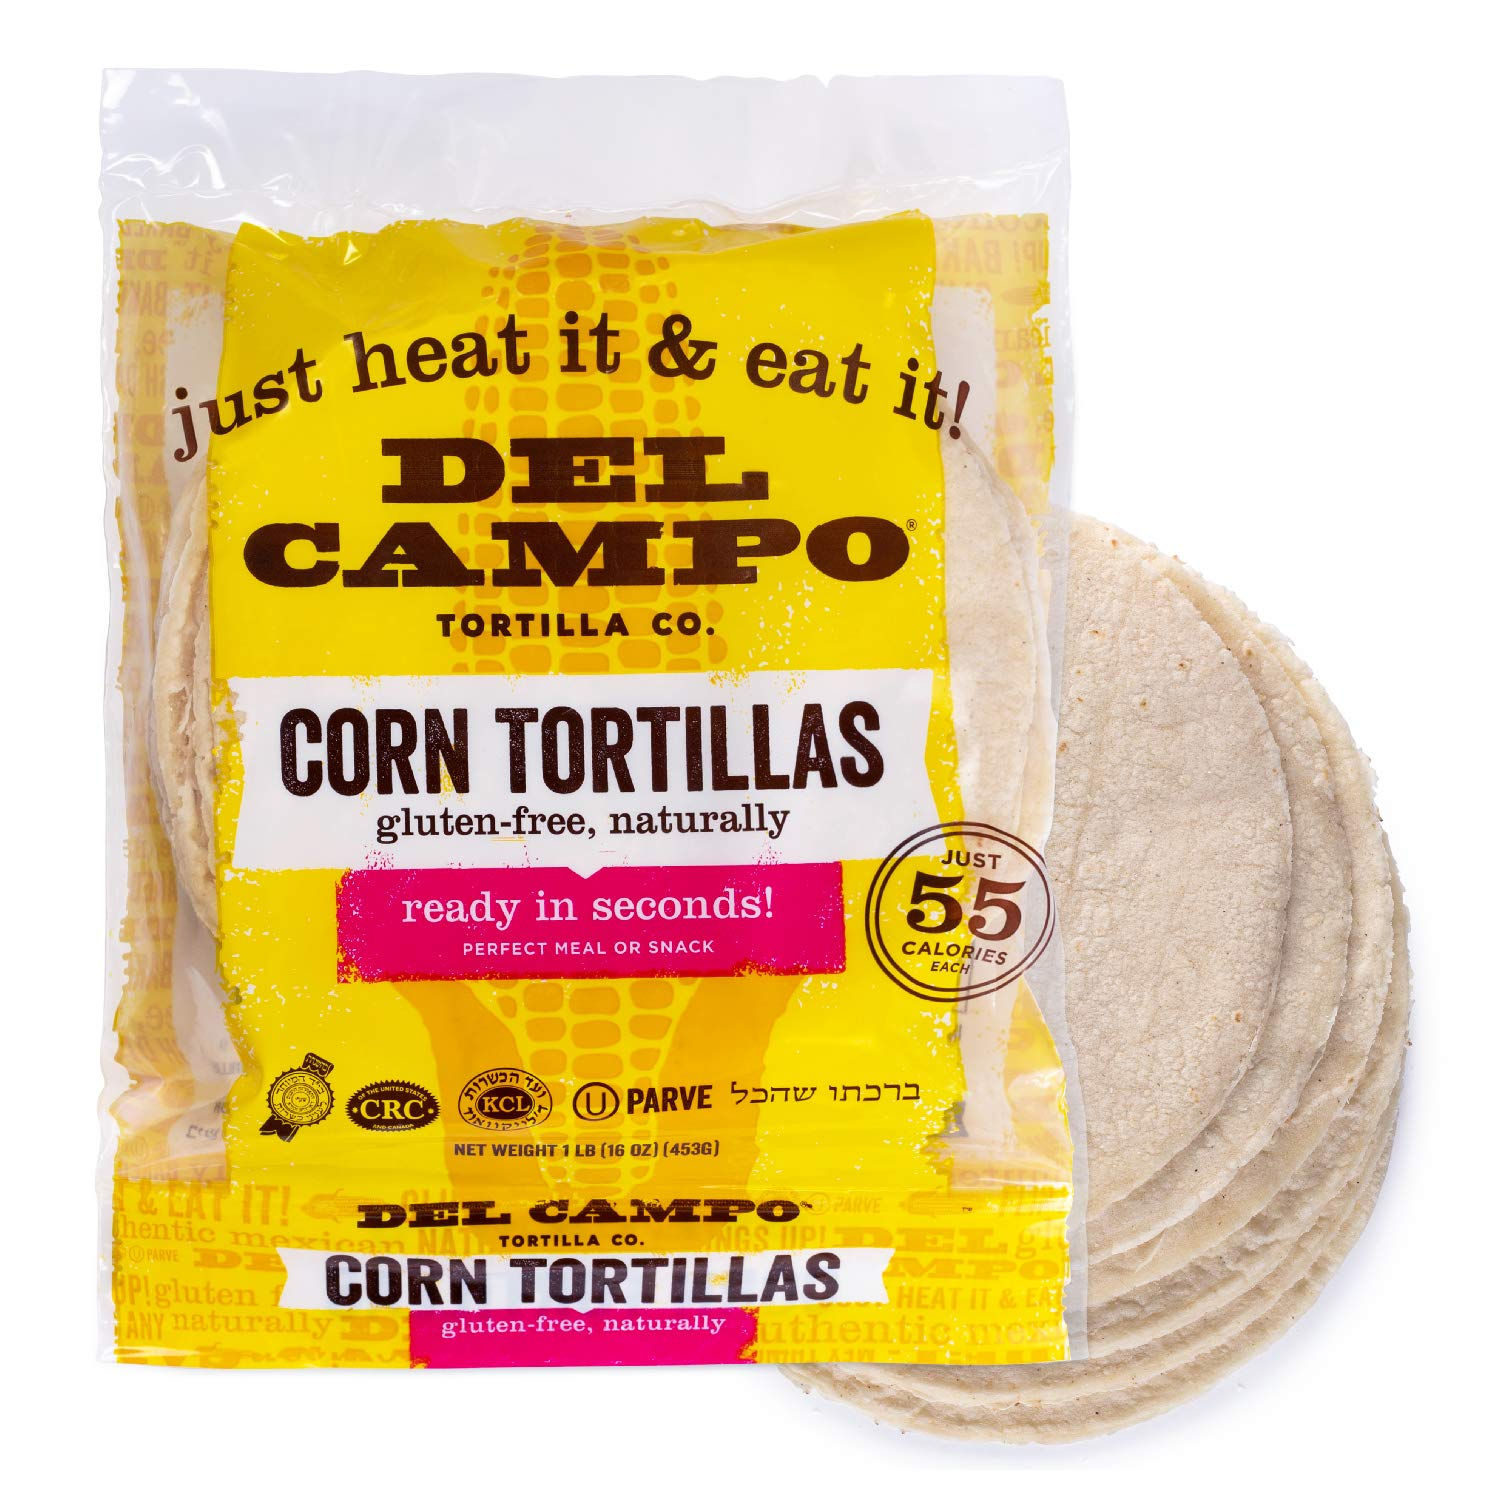 Amazon Com Del Campo Soft Corn Tortillas 6 Inch Round 1 Lb Bag 100 Natural Gluten Free And All Corn Authentic Mexican Food Many Serving Options Wraps Tacos Quesadillas Or Burritos Kosher 16ct